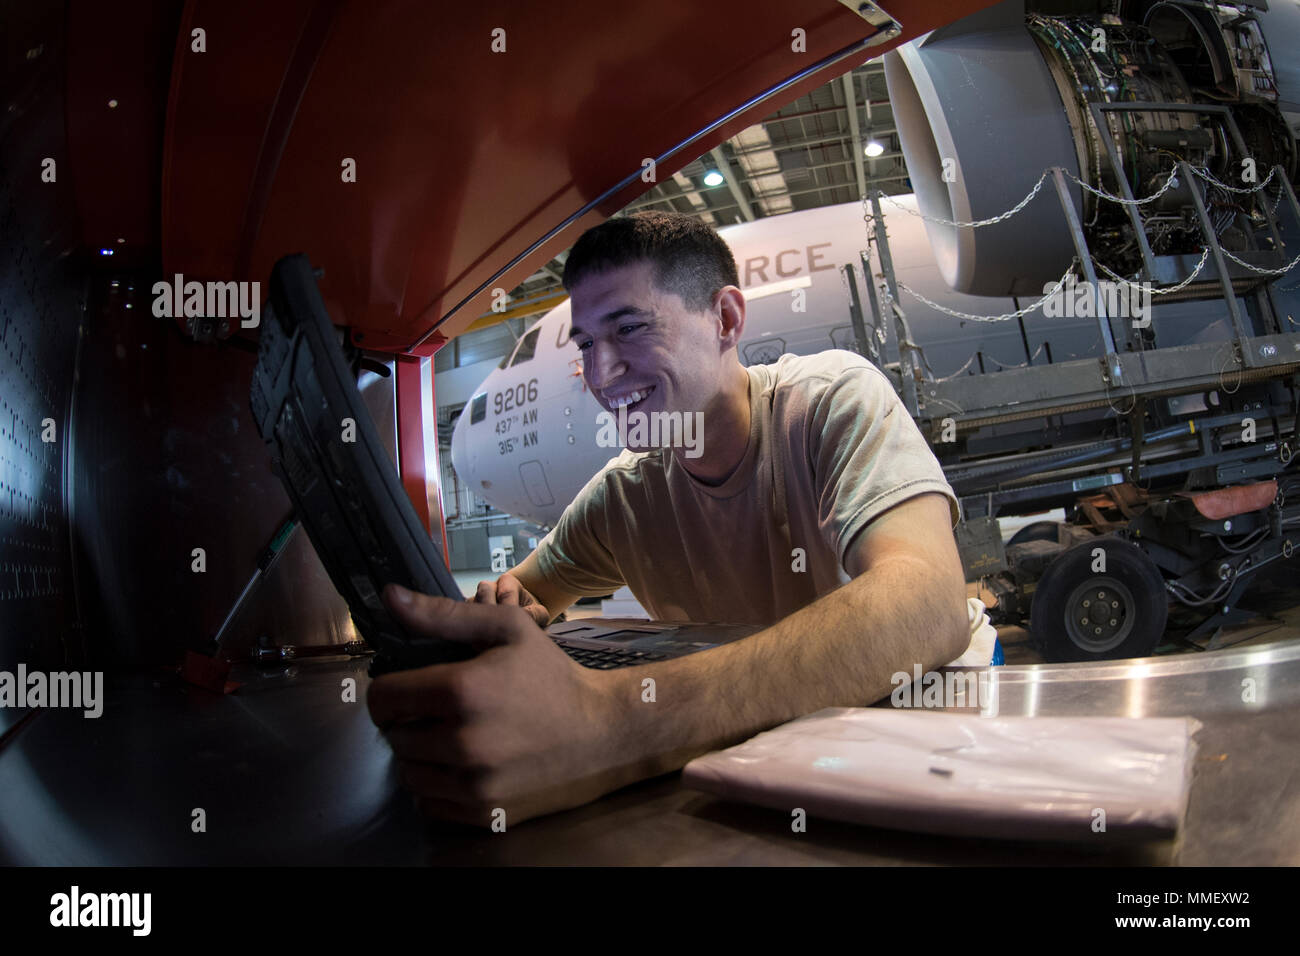 U.S. Air Force Senior Airman Taylor Corliss, 721st Aircraft Maintenance Squadron aerospace propulsion journeyman, reads schematics to a C-17 Globemaster III engine at a hangar on Ramstein Air Base, Germany, Oct. 27, 2017. The 721st AMXS works on aircraft from all over Air Mobility Command. (U.S. Air Force photo by Senior Airman Devin Boyer) - Stock Image